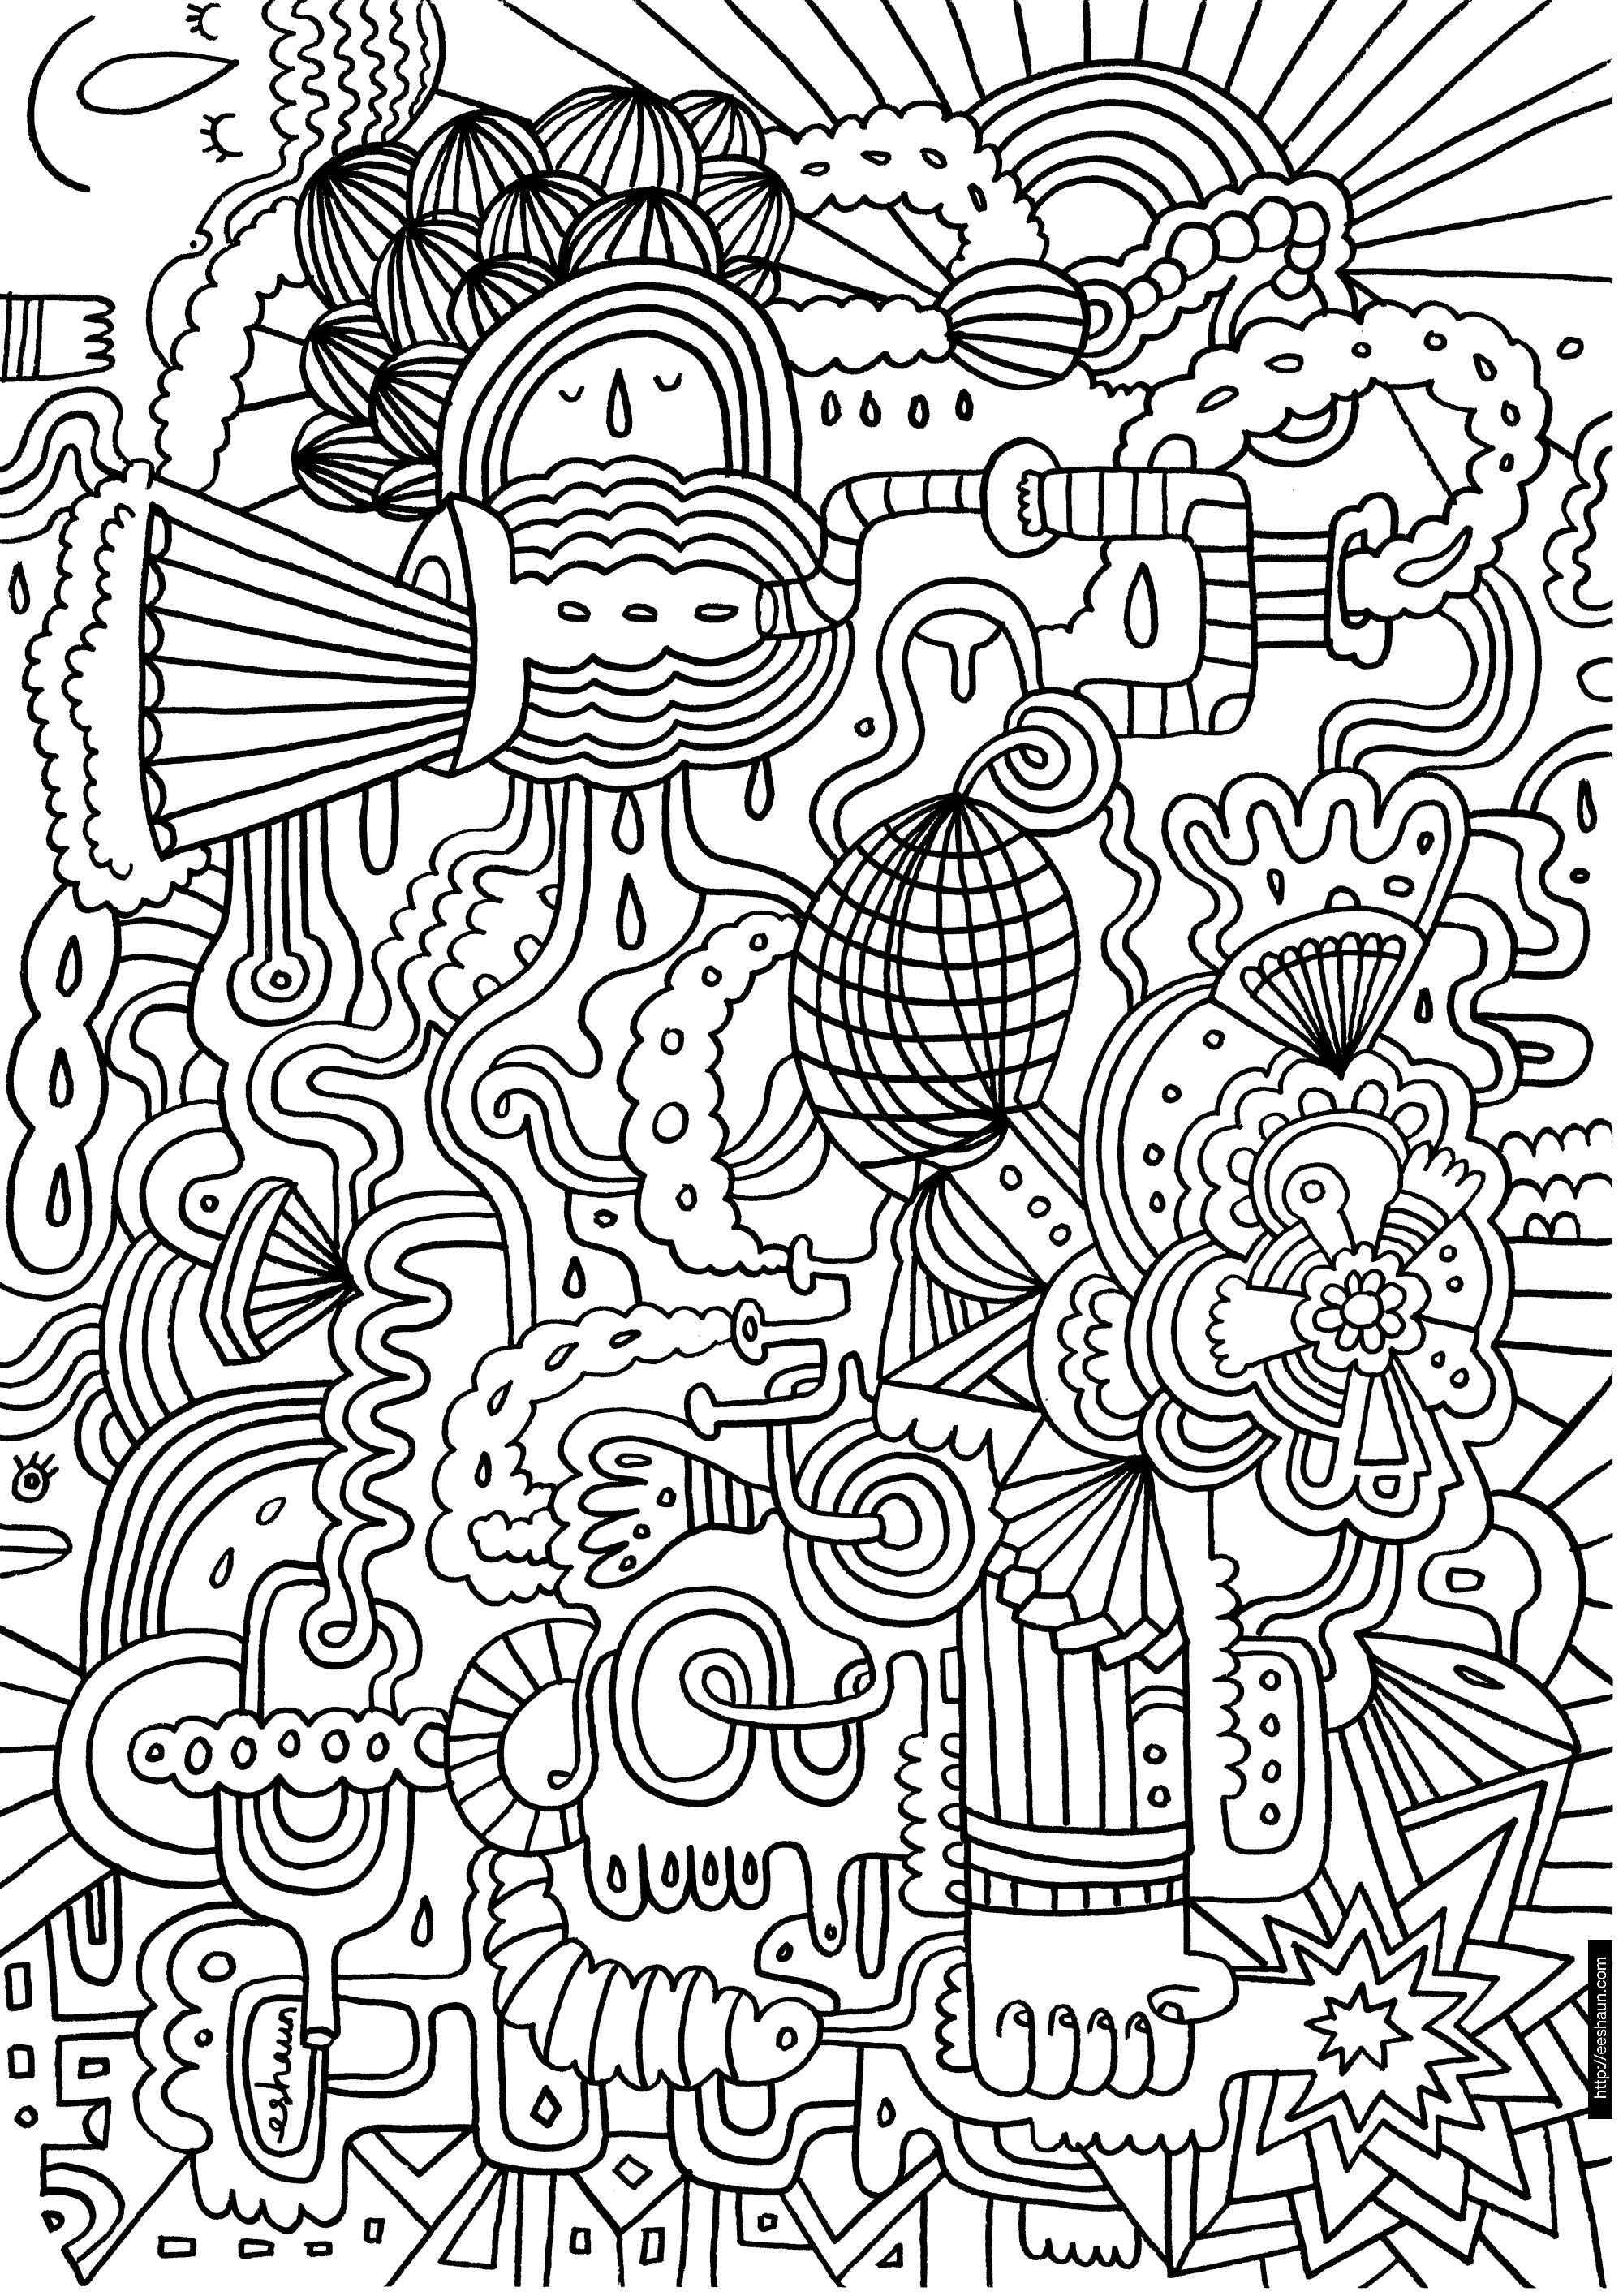 Really Hard Detailed Coloring Pages Coloring Home Really Detailed Coloring Pages